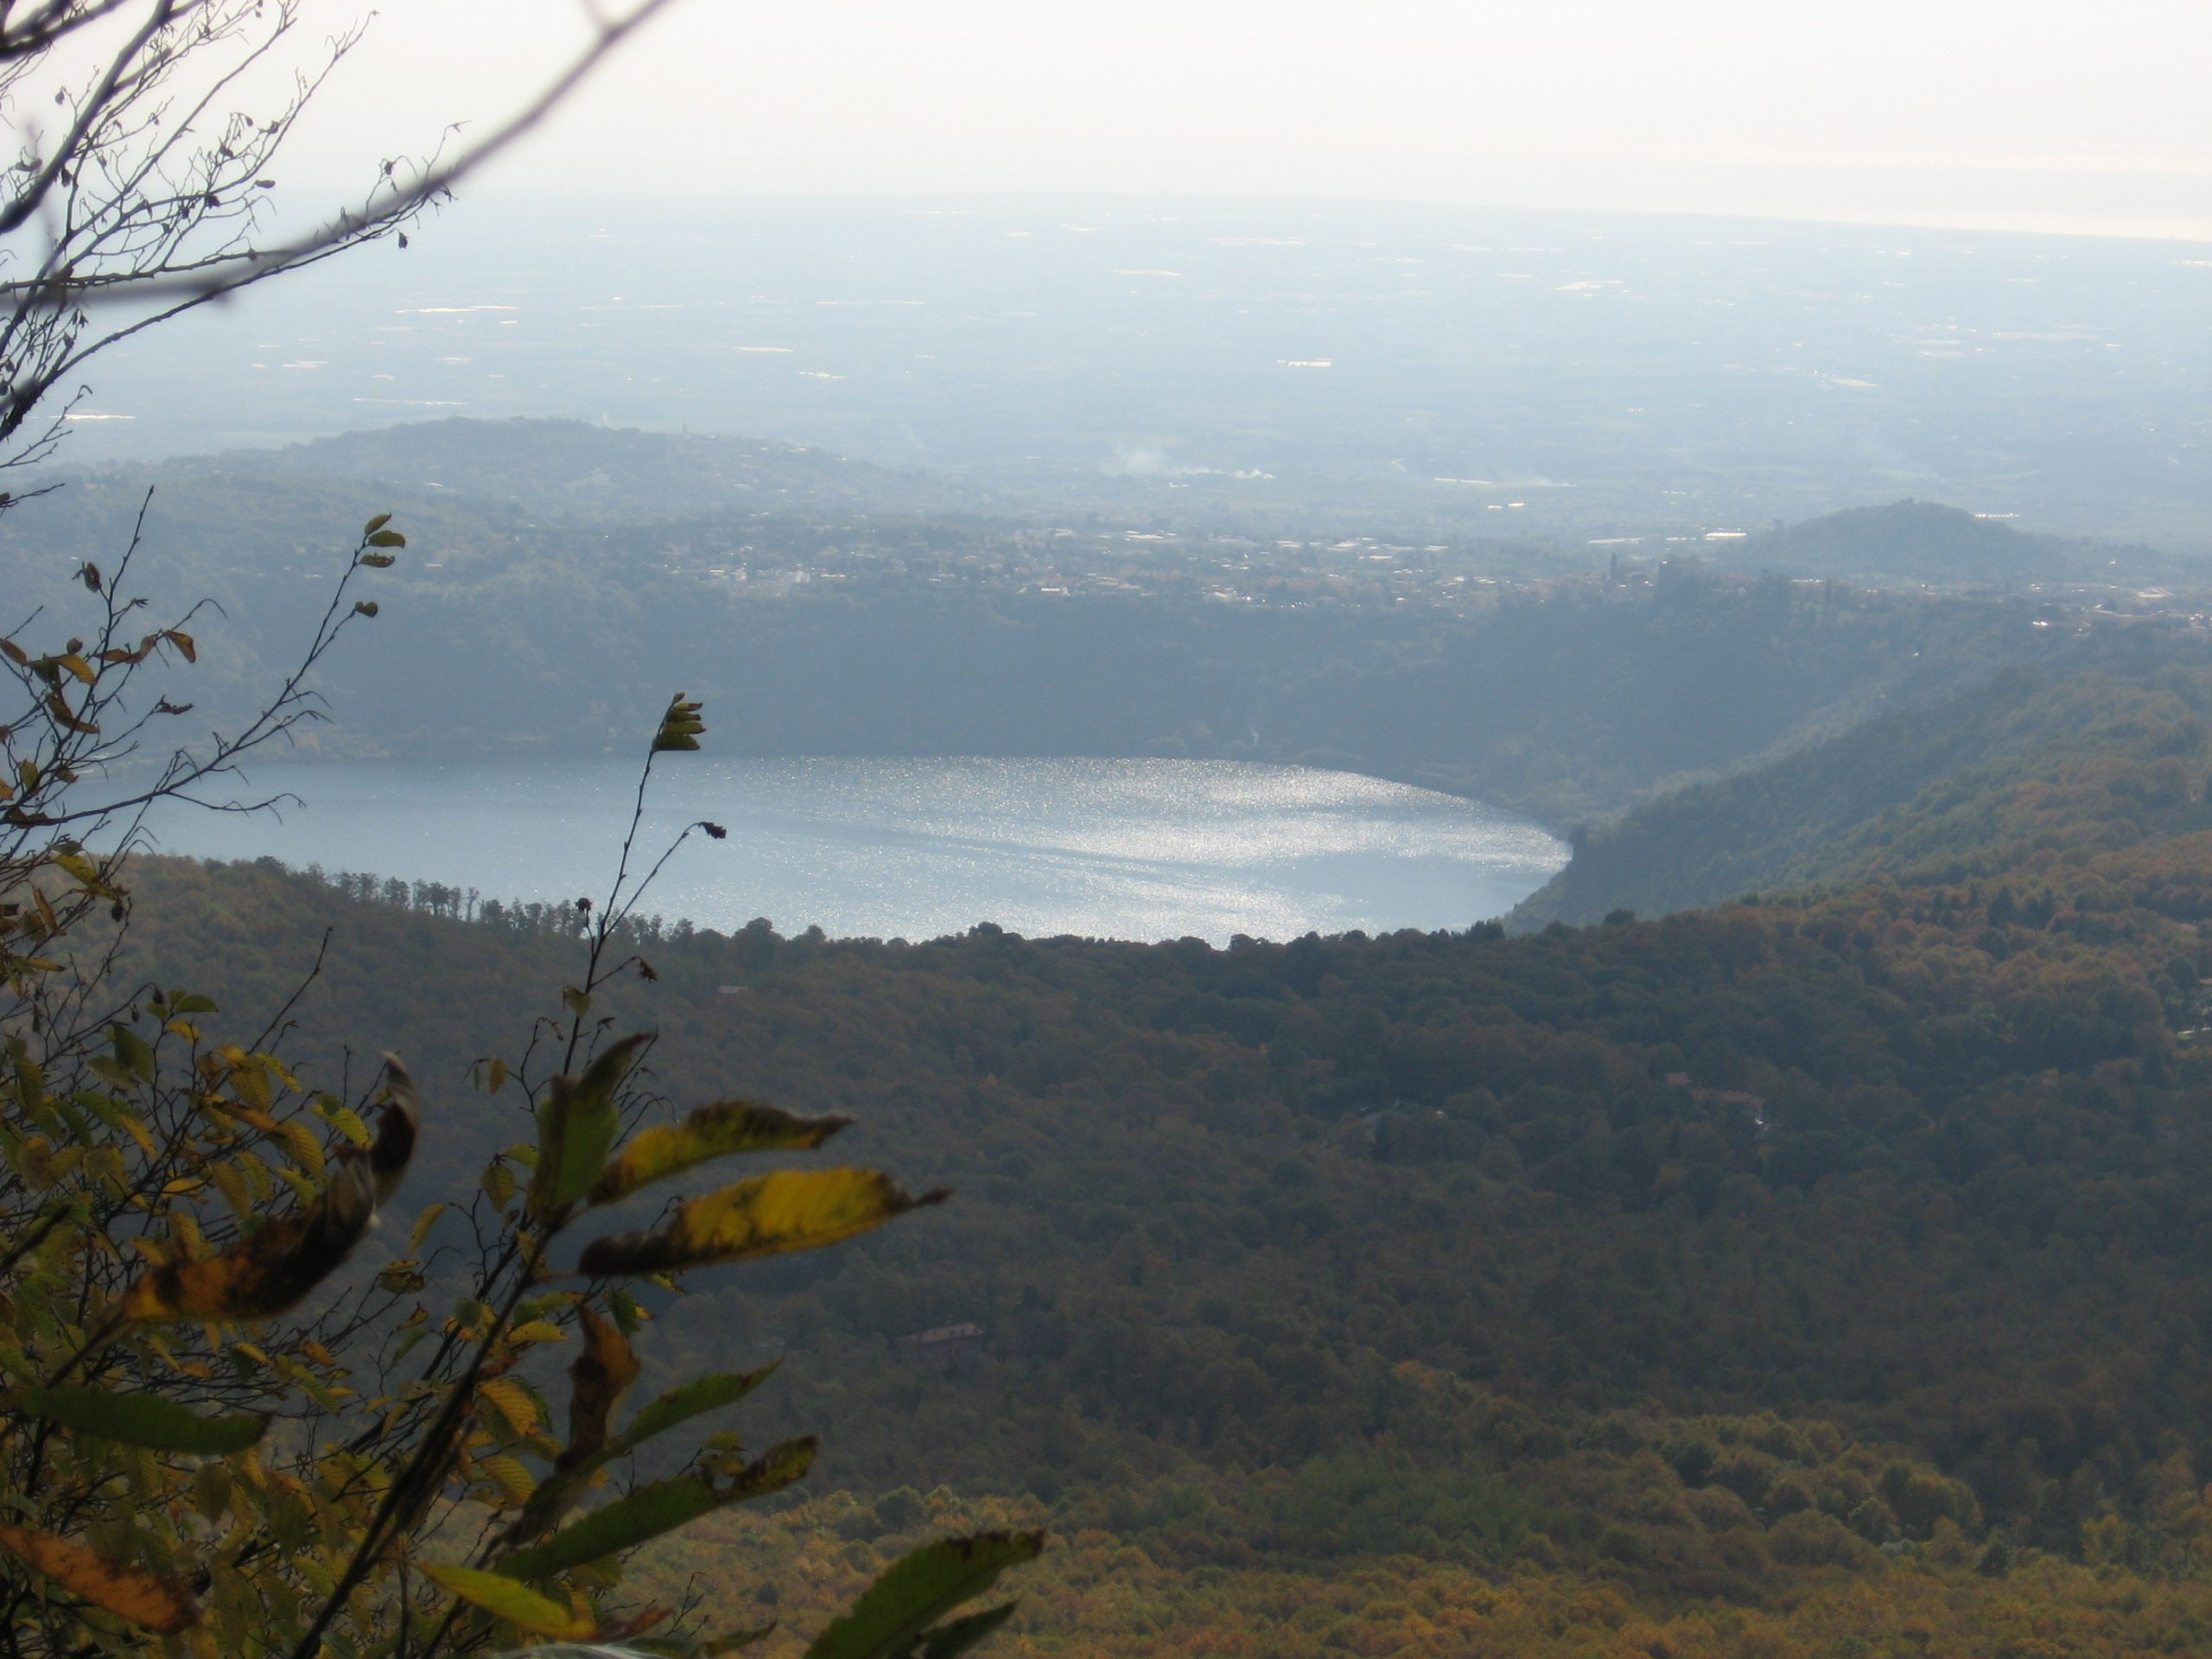 a view onto the lake of Nemi from the top of Monte Cavo, a mountain overlooking it